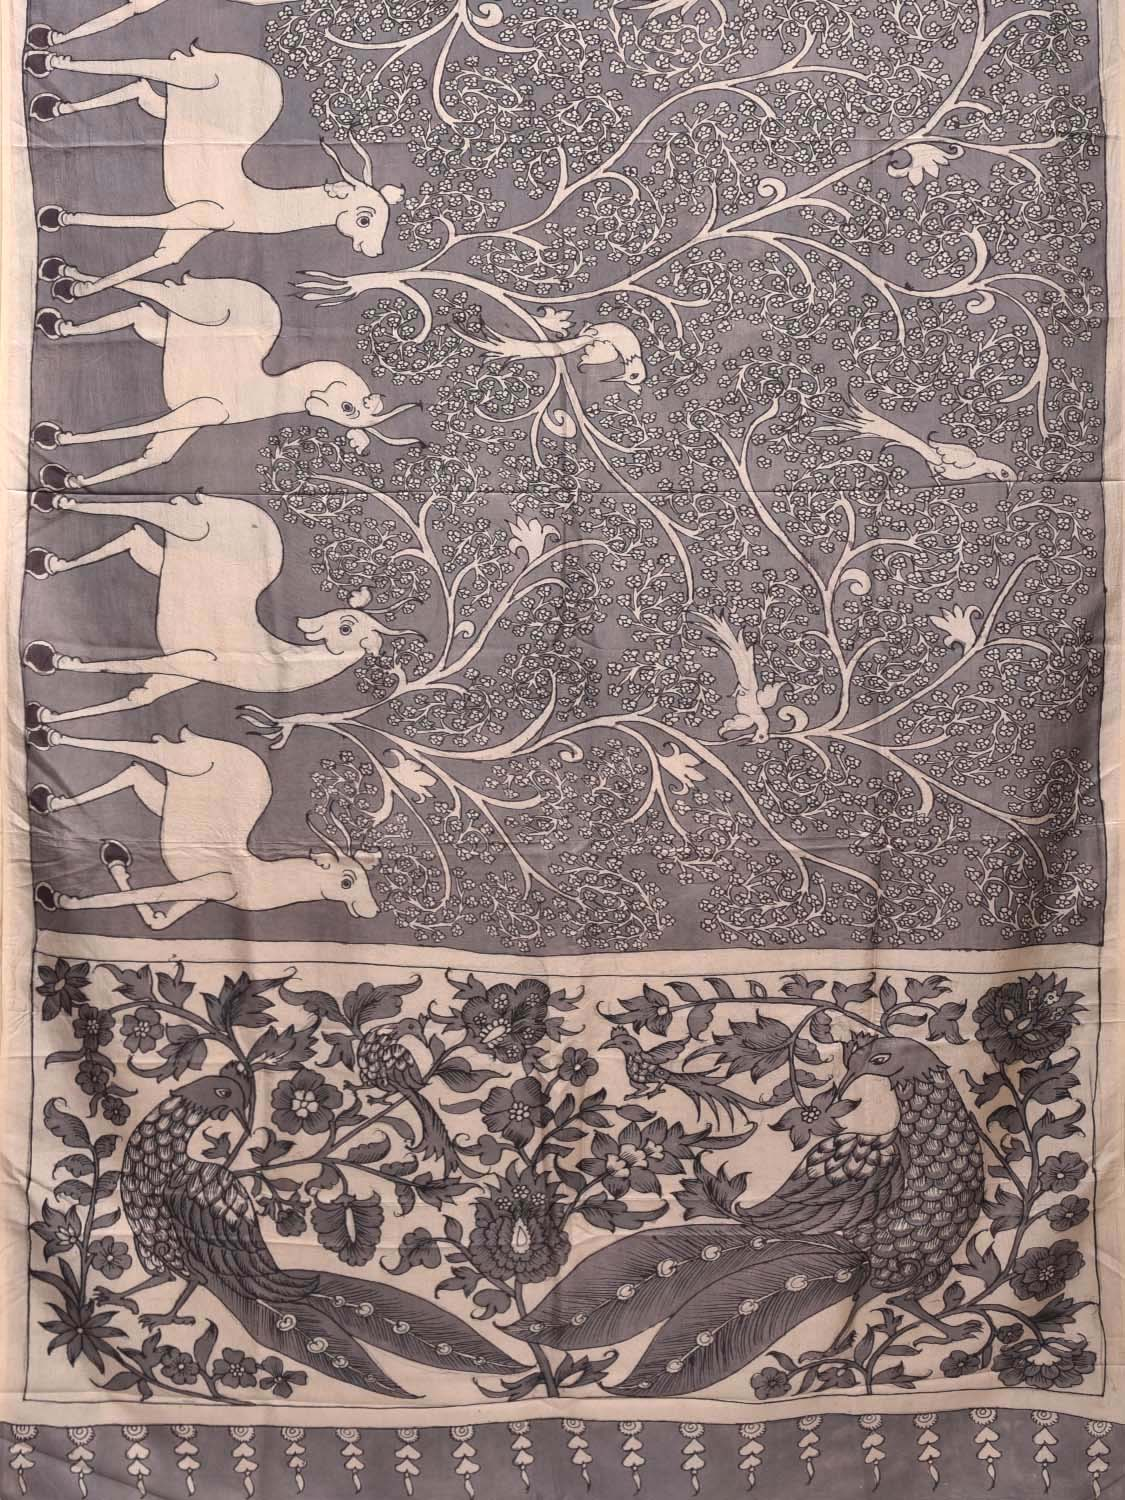 Grey Kalamkari Hand Painted Silk Handloom Saree with Deers Design KL0257